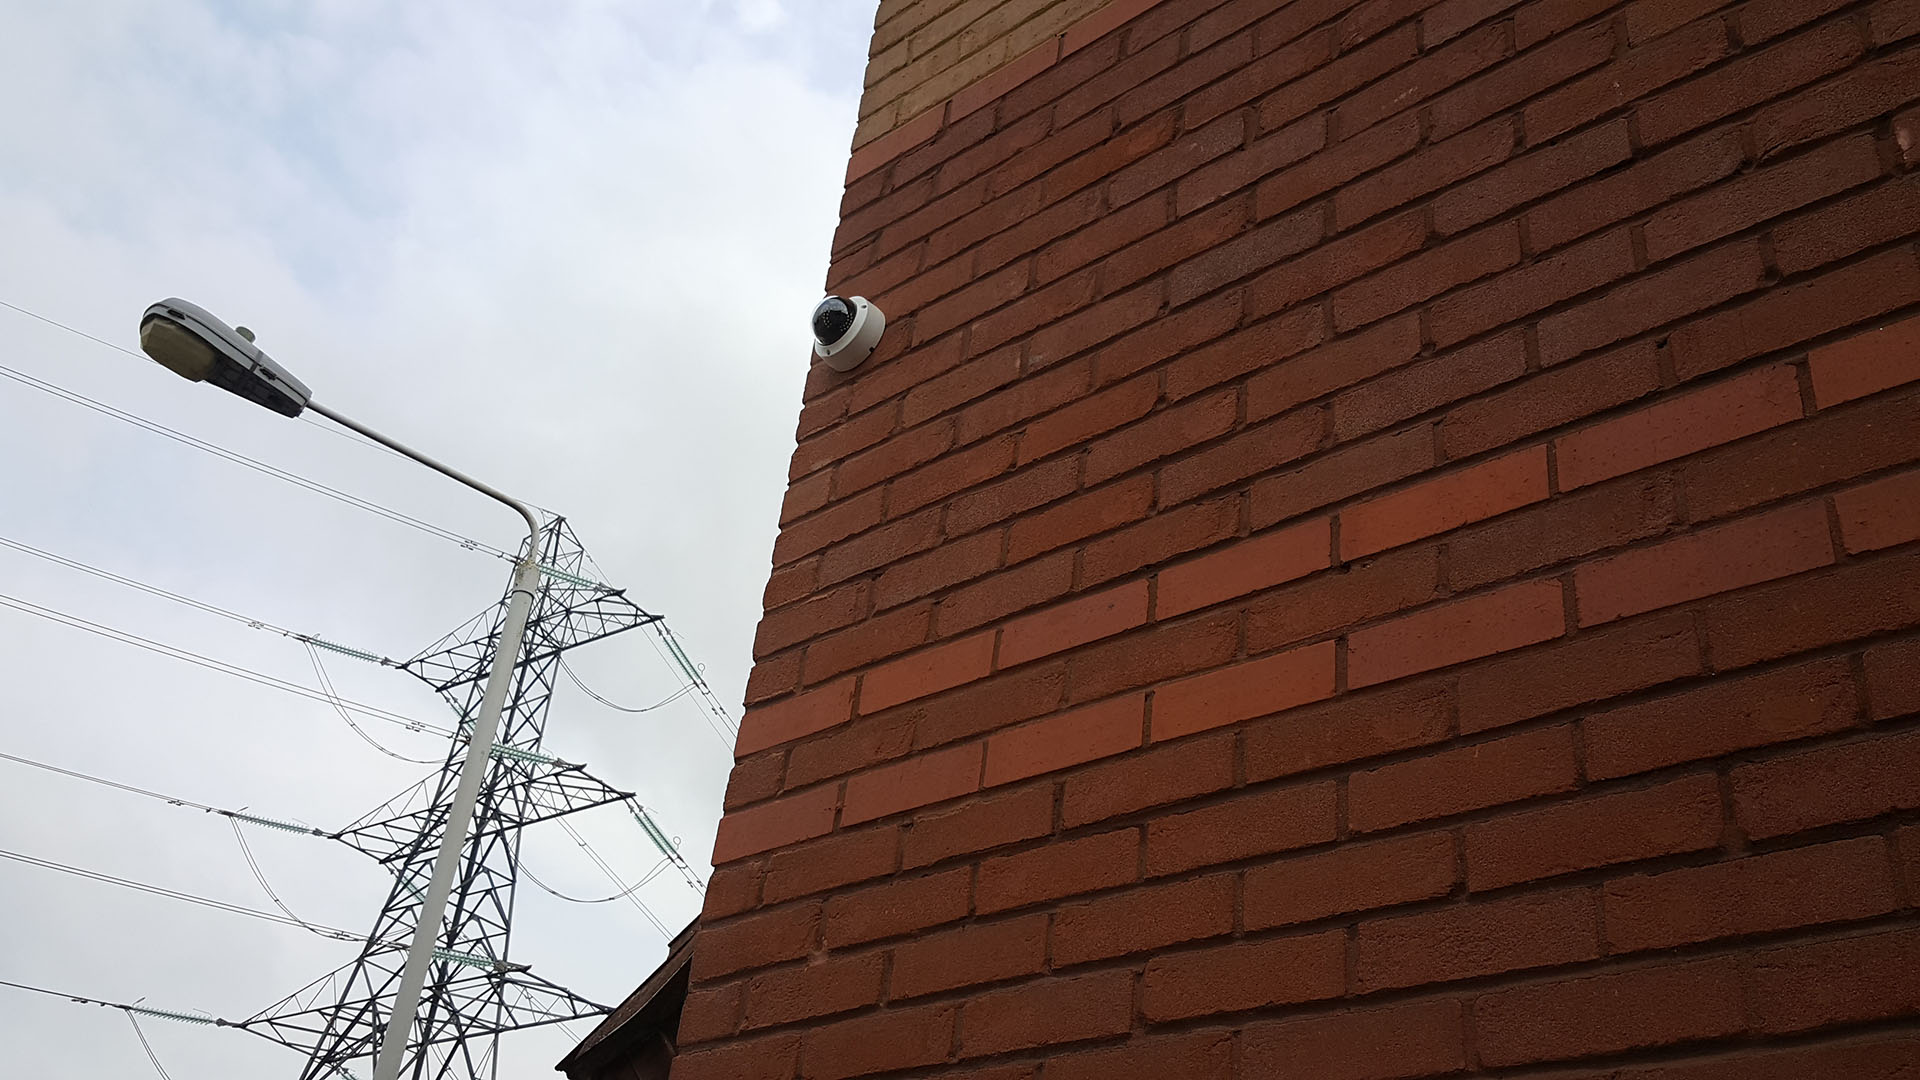 CCTV Installation in Walthamstow